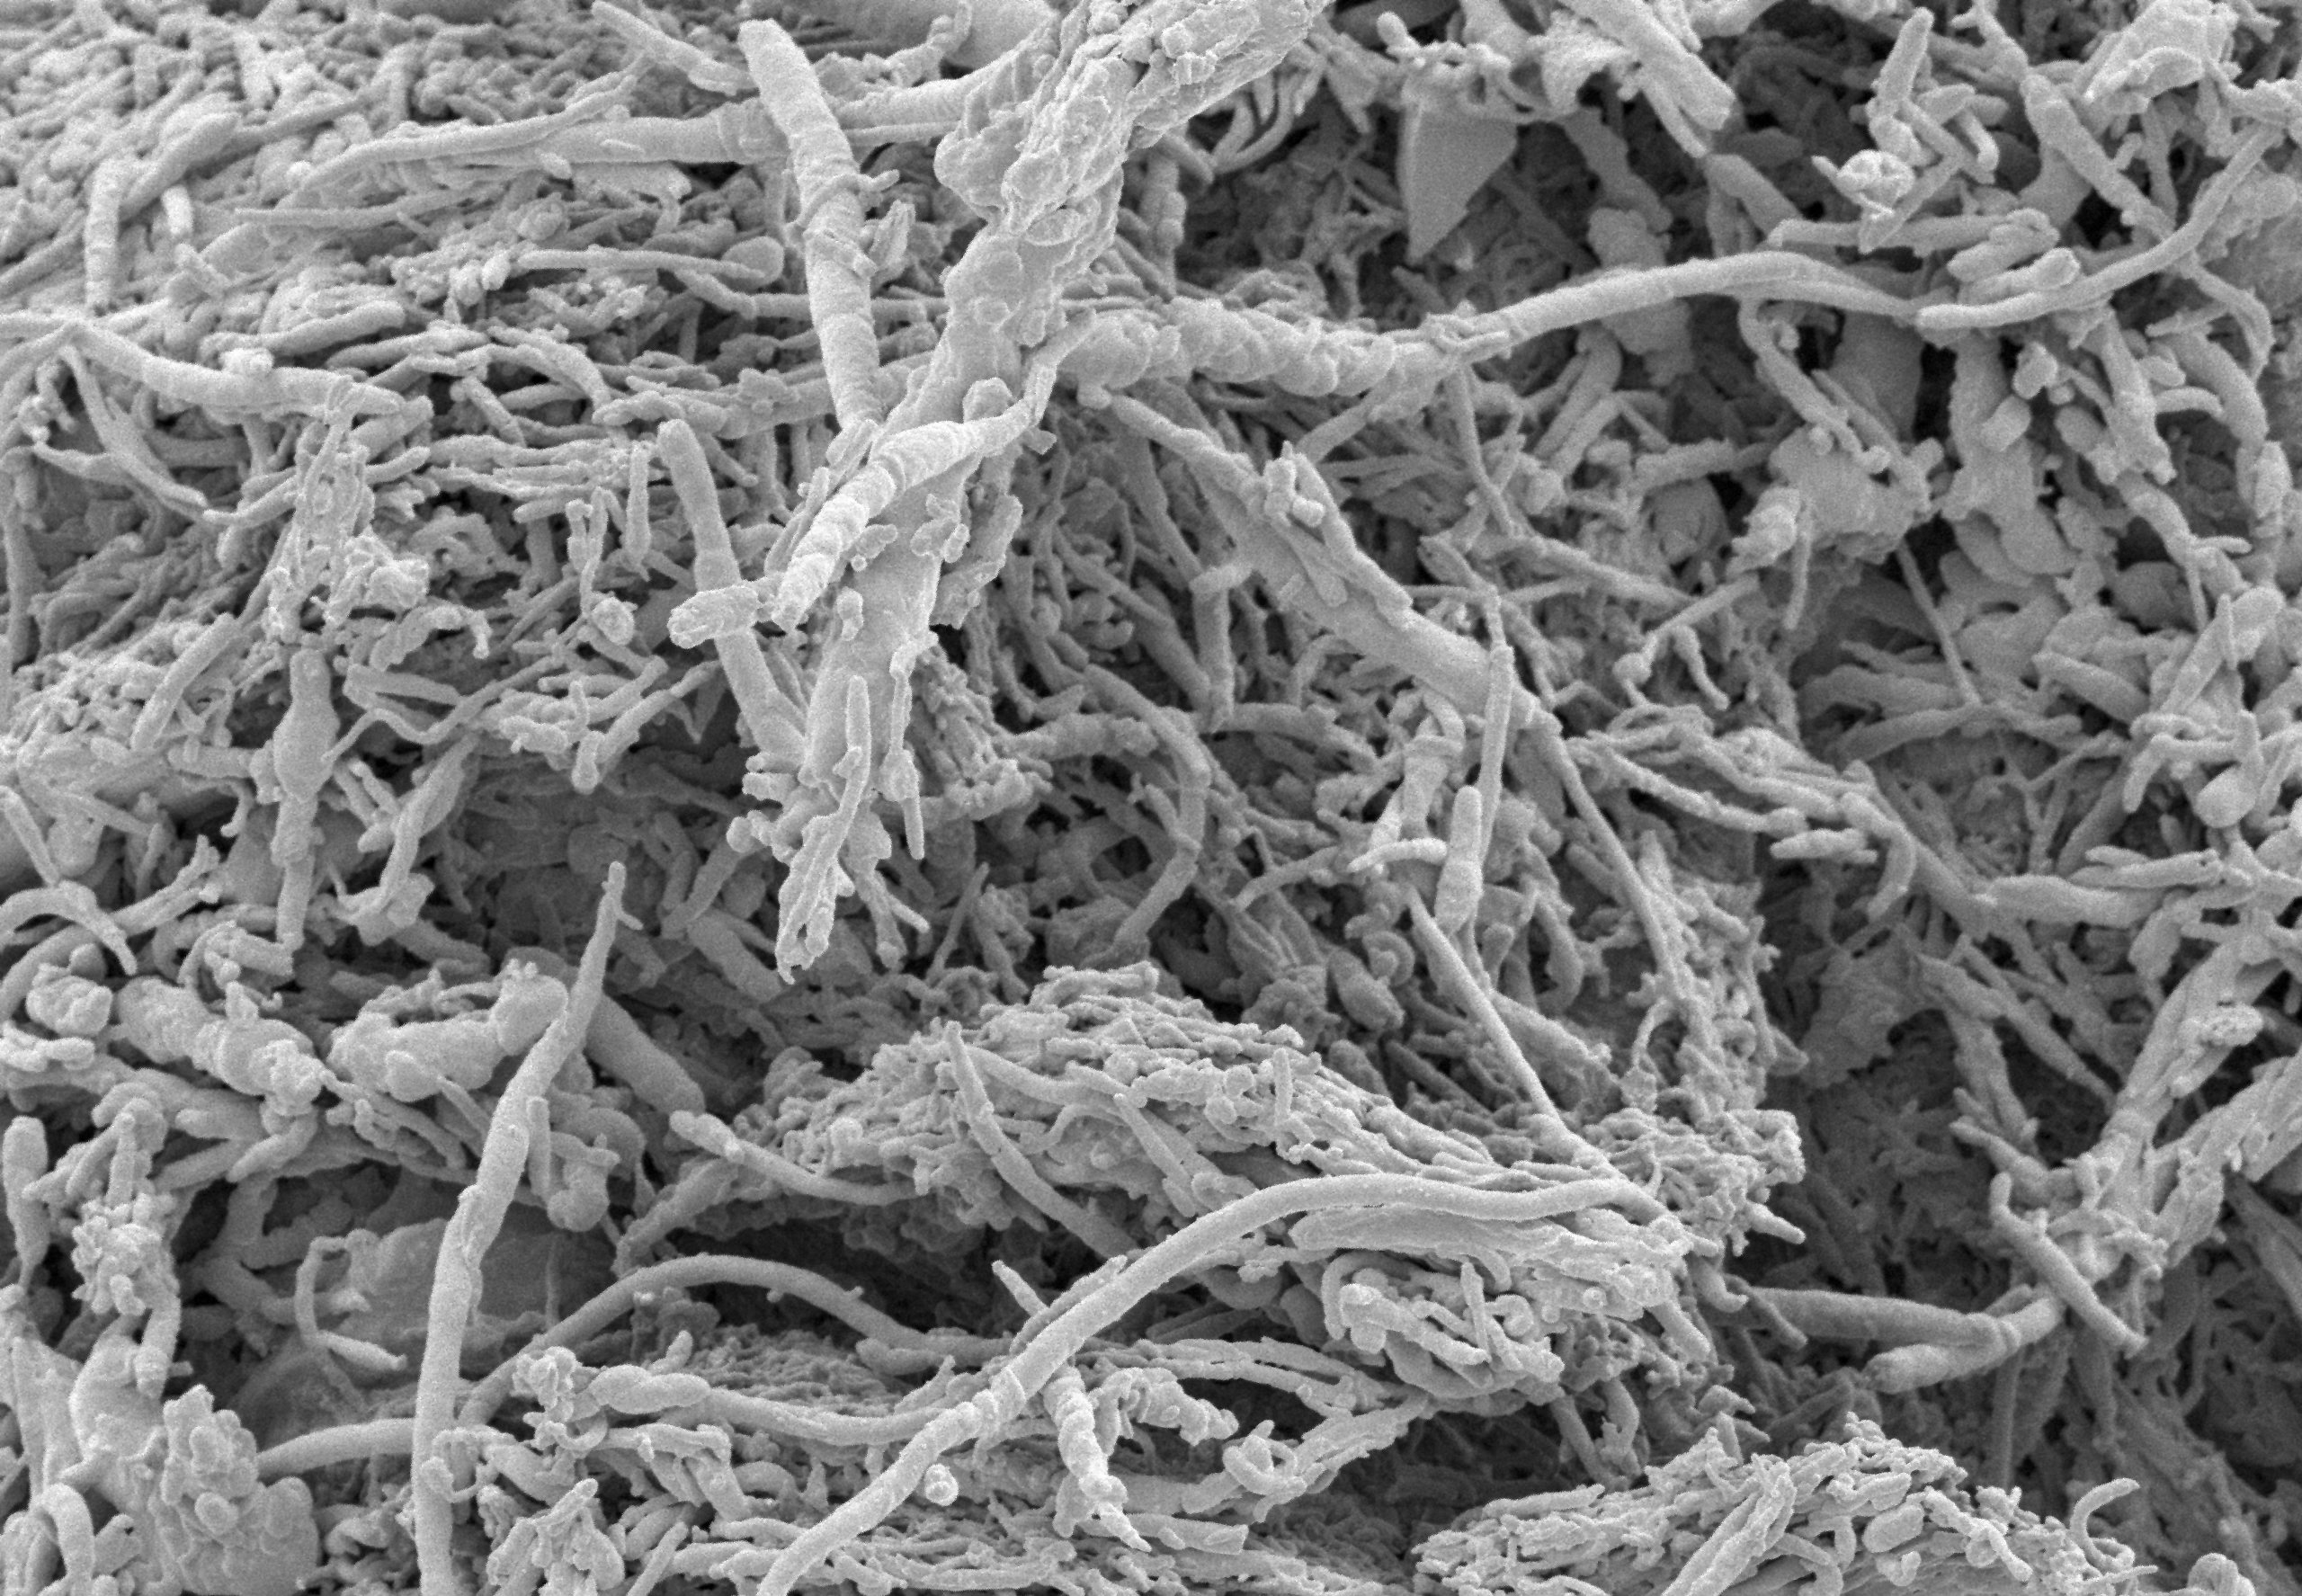 House dust under high magnification reveals fungi and bacteria.